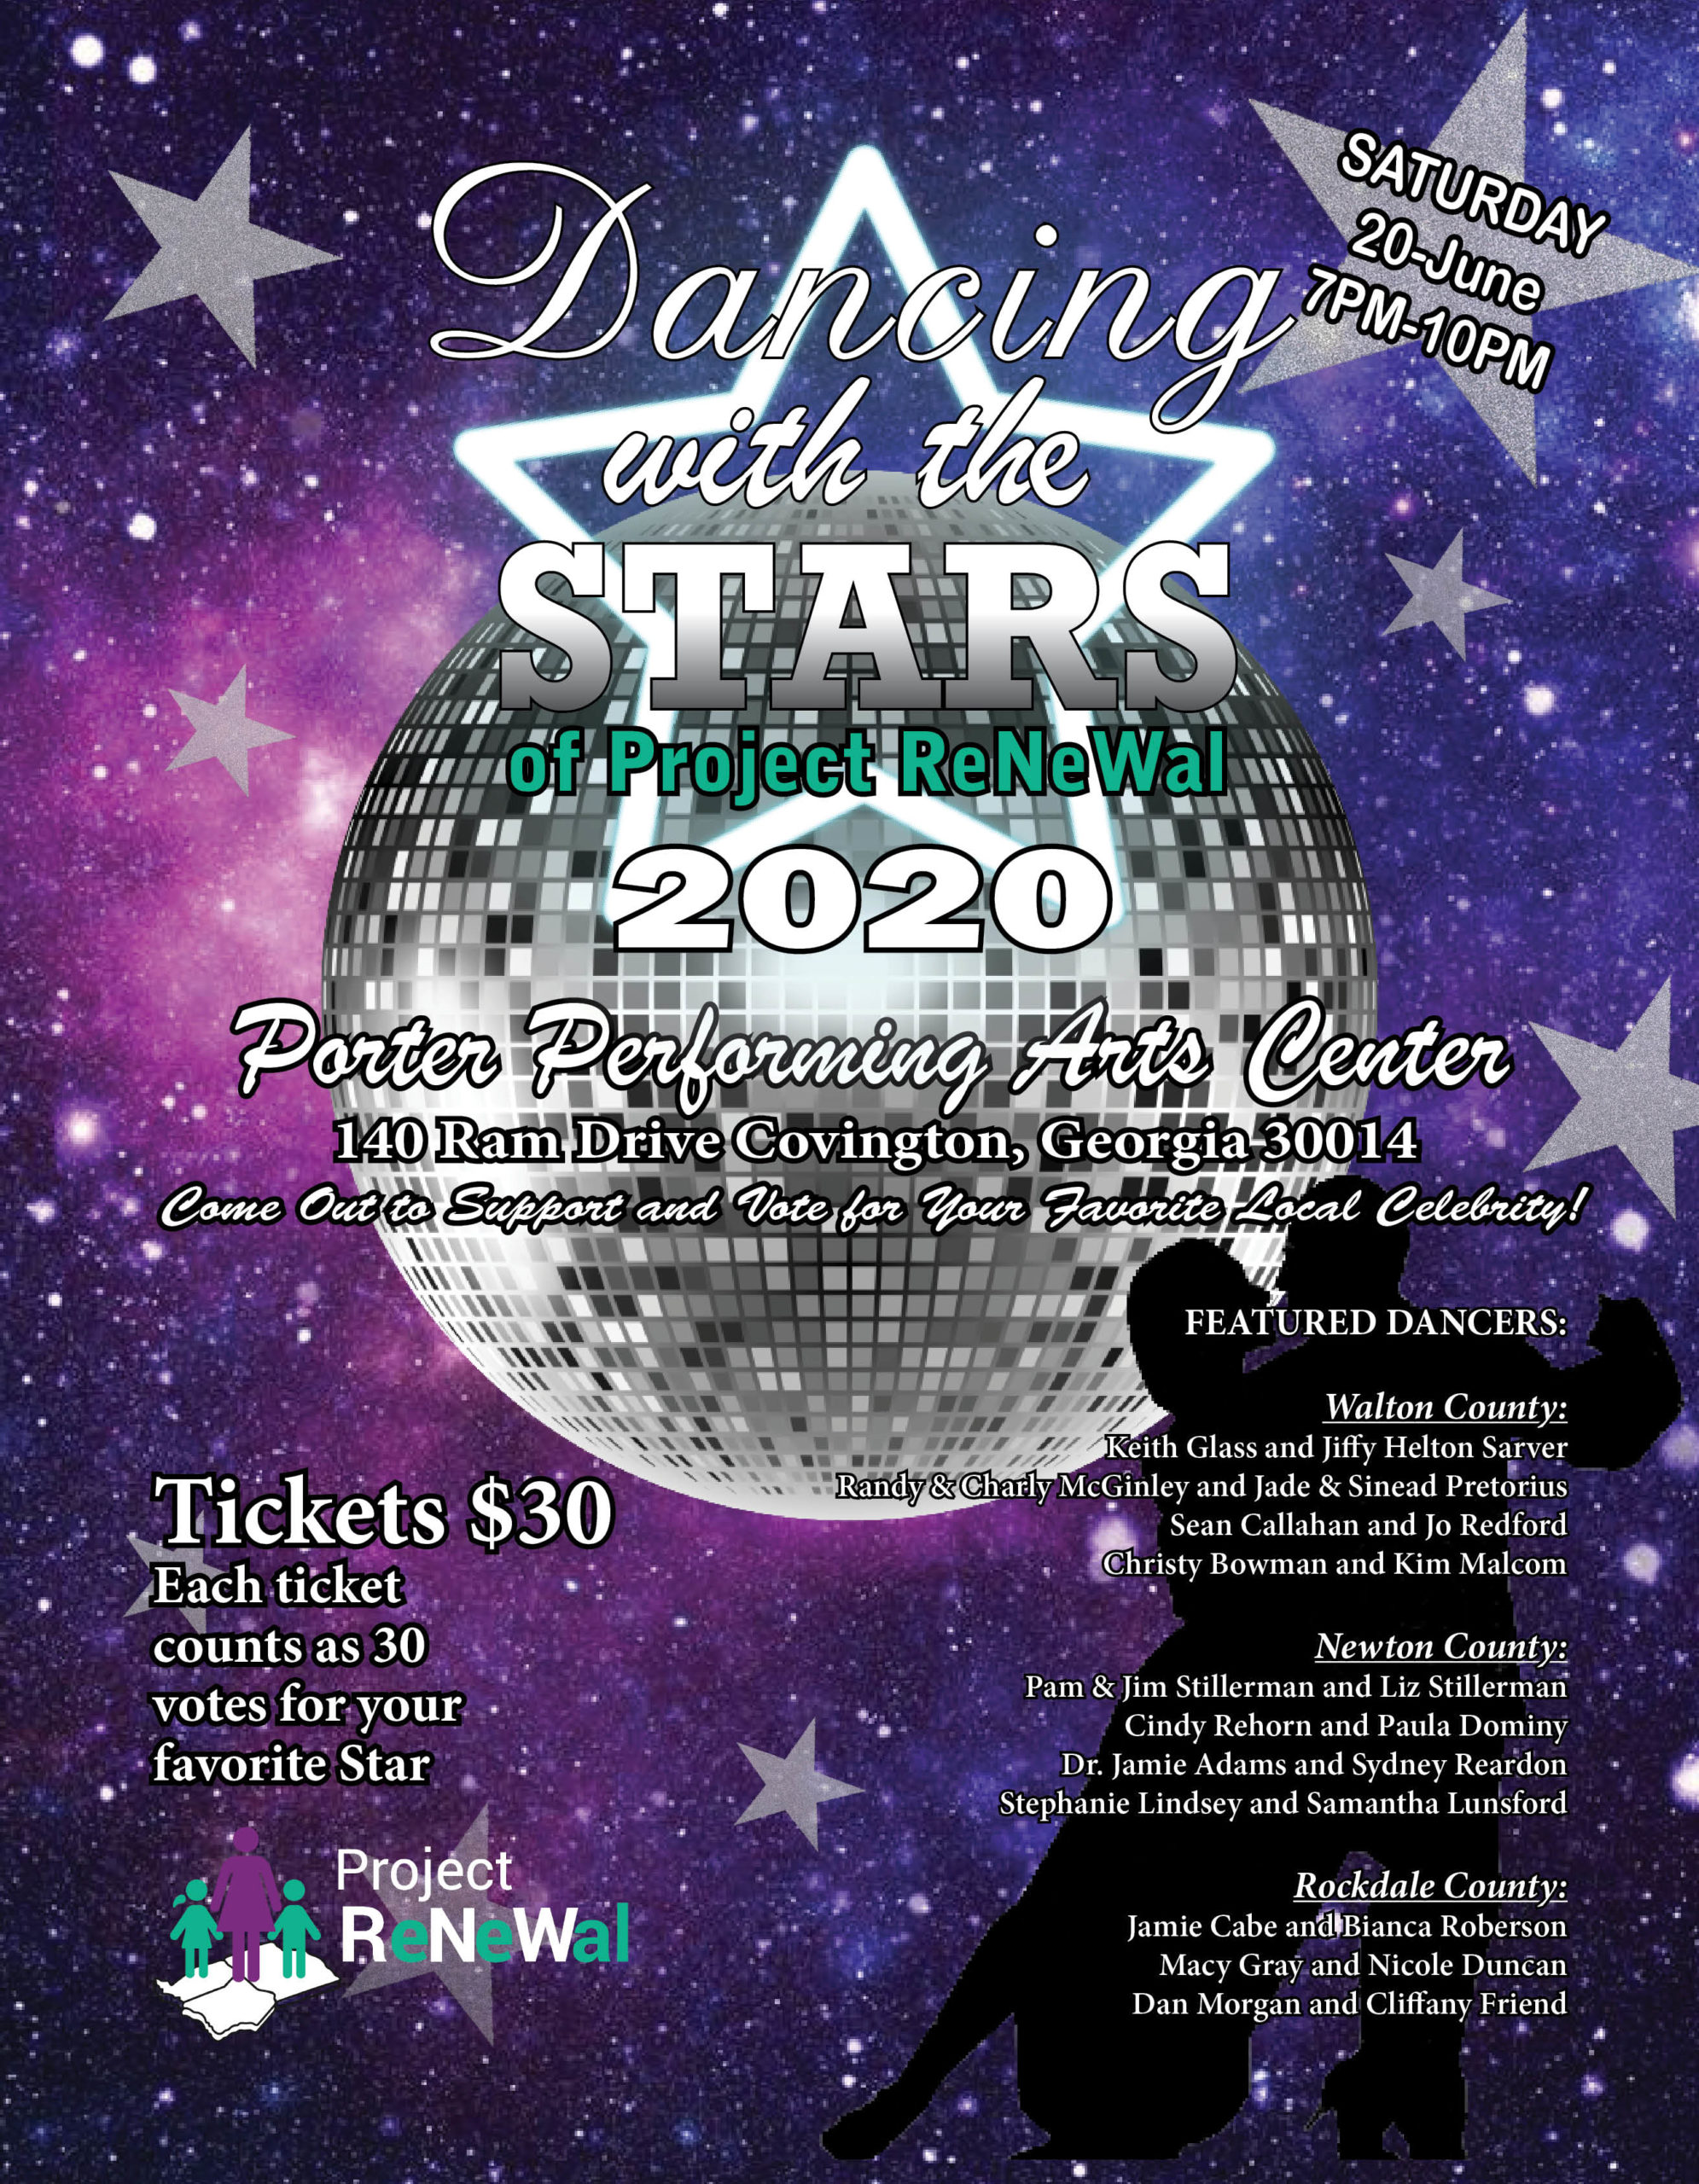 Dancing-With-The-Stars-Cover-With-Dancers-Names_June-20th-2020-1